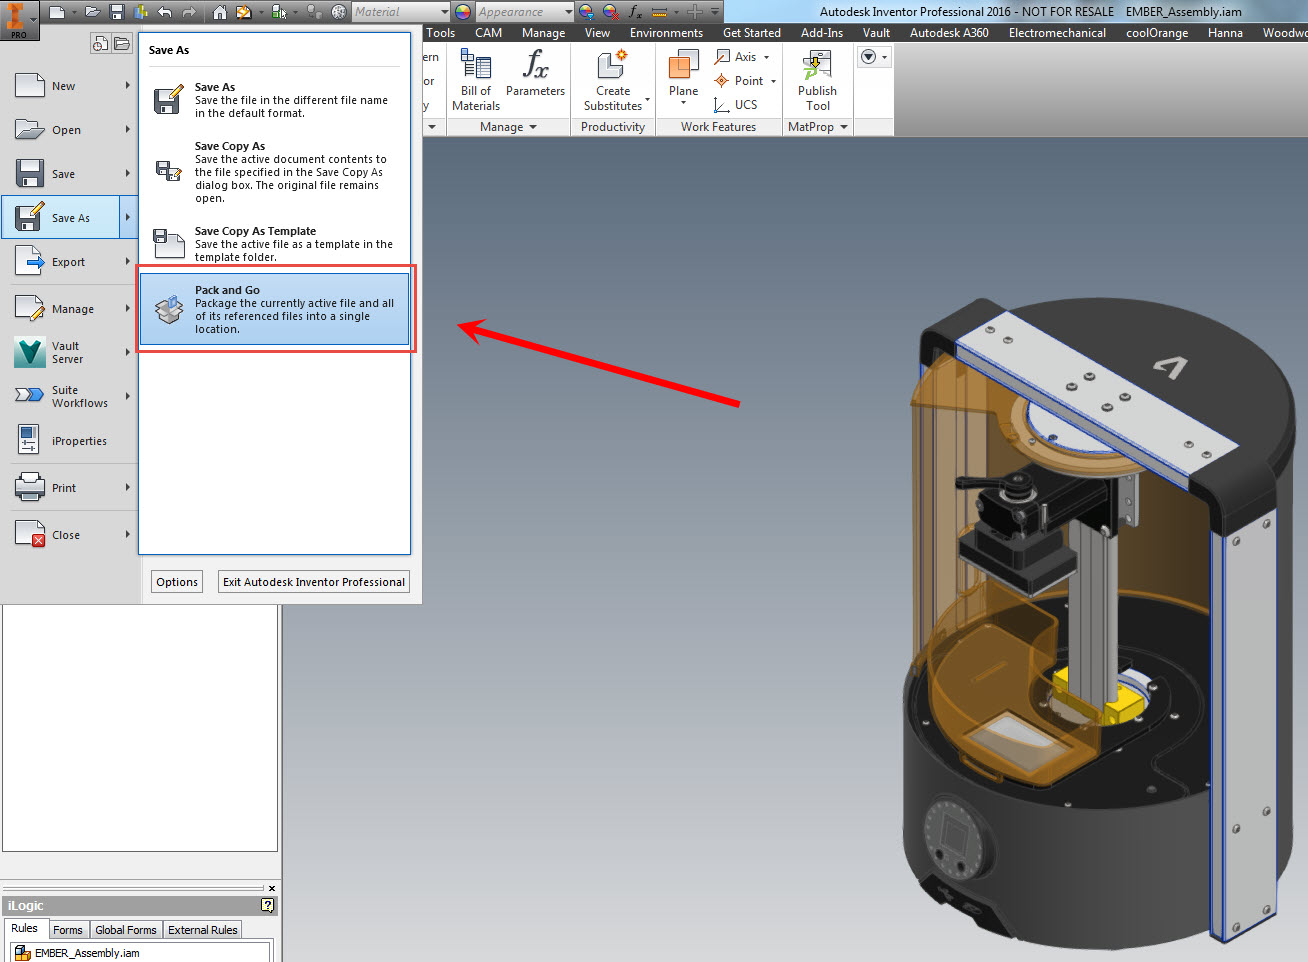 Buy Cheap Autodesk Inventor Professional 2016